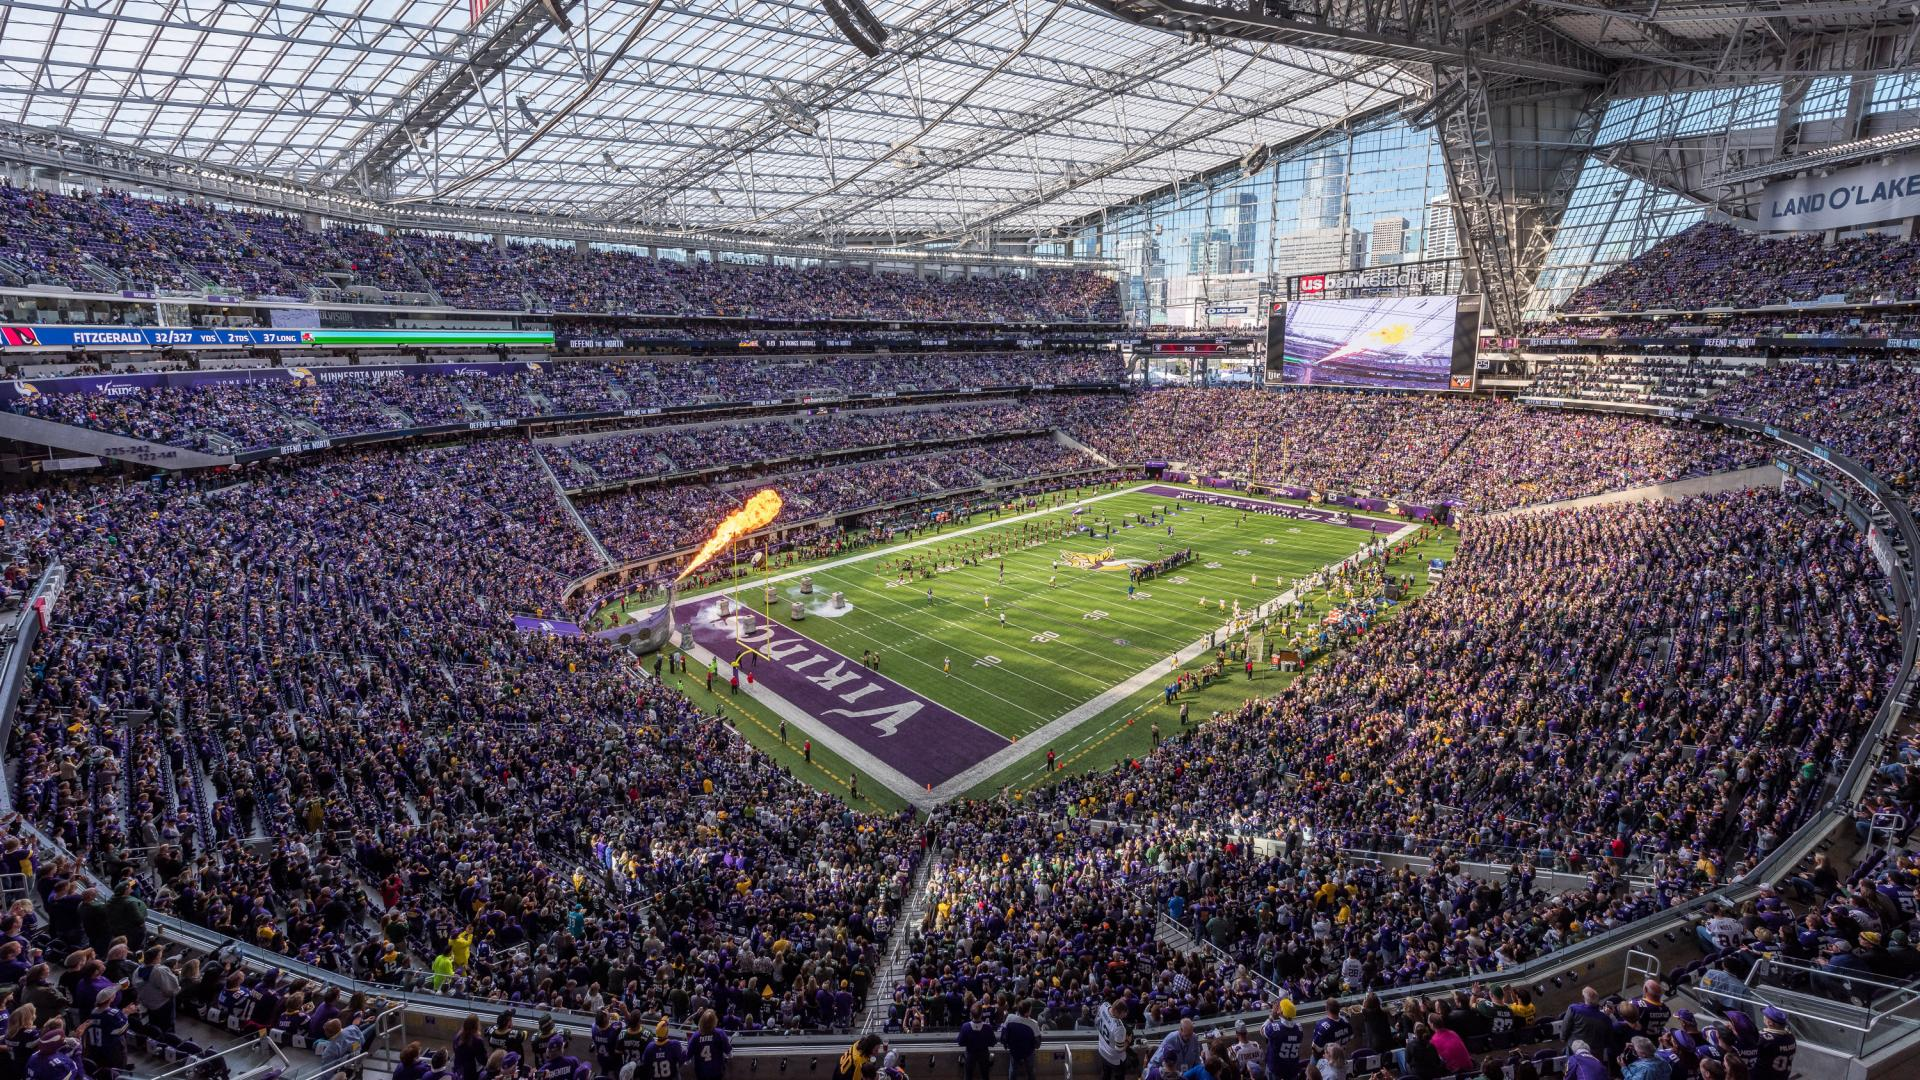 Minnesota Vikings game at U.S. Bank Stadium